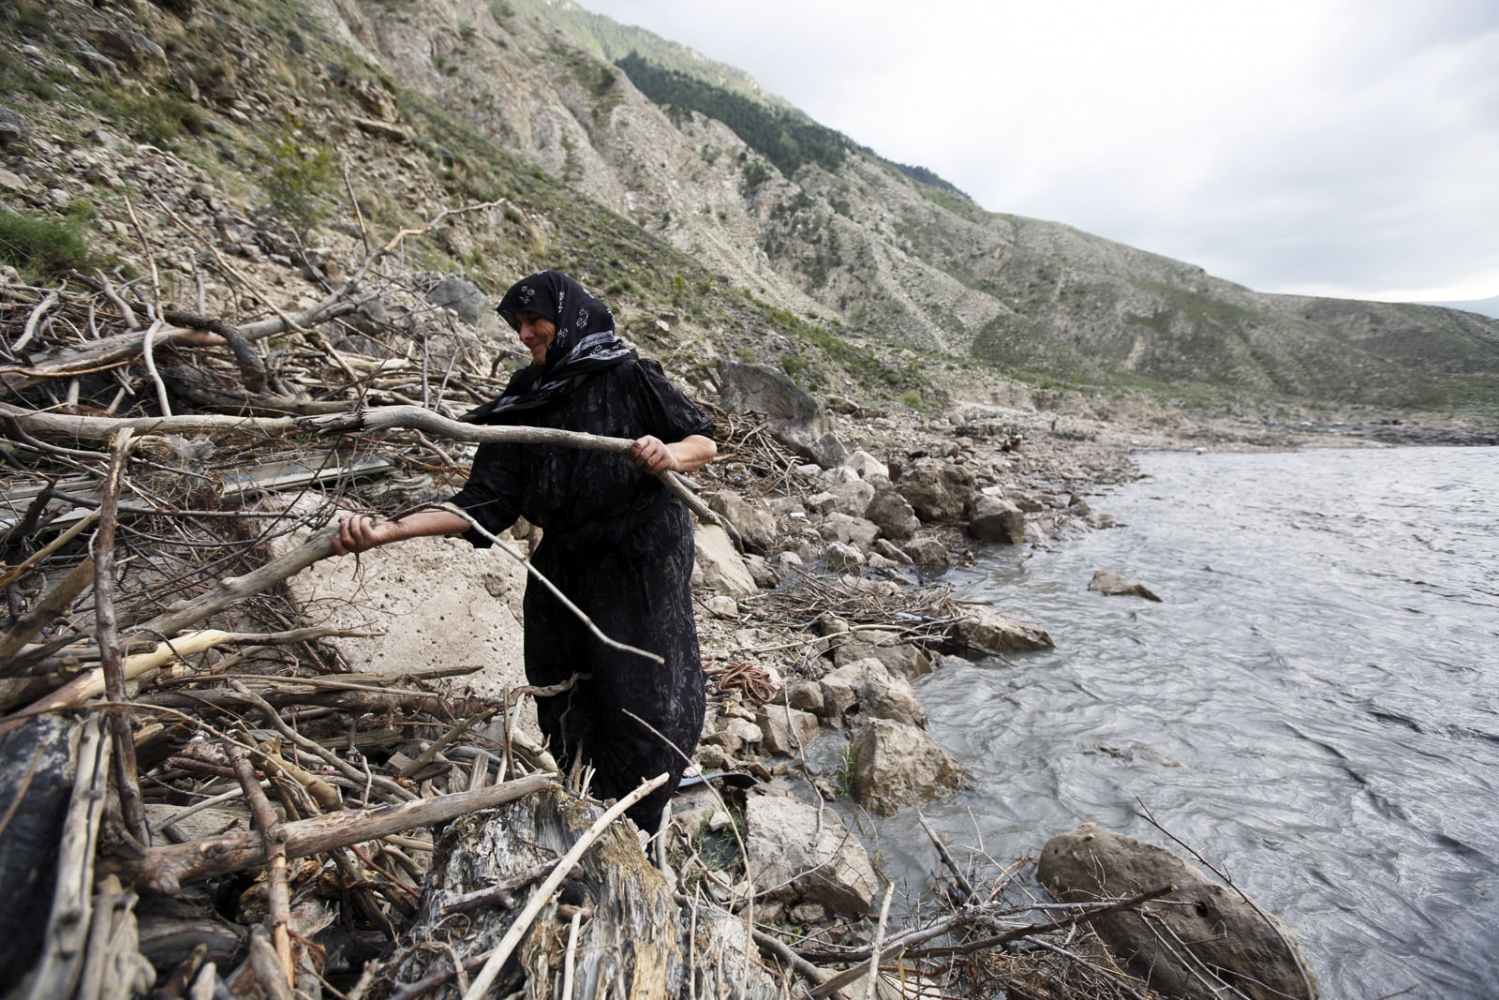 A women, member of one of the last remaining salt making family from Kvankhidatli village, walks to collect drift wood to cook the salt as logging trees is now illegal in the region and most have been cleared due to the salt activity over the years. Botlikhsky District of Dagestan, Russia.